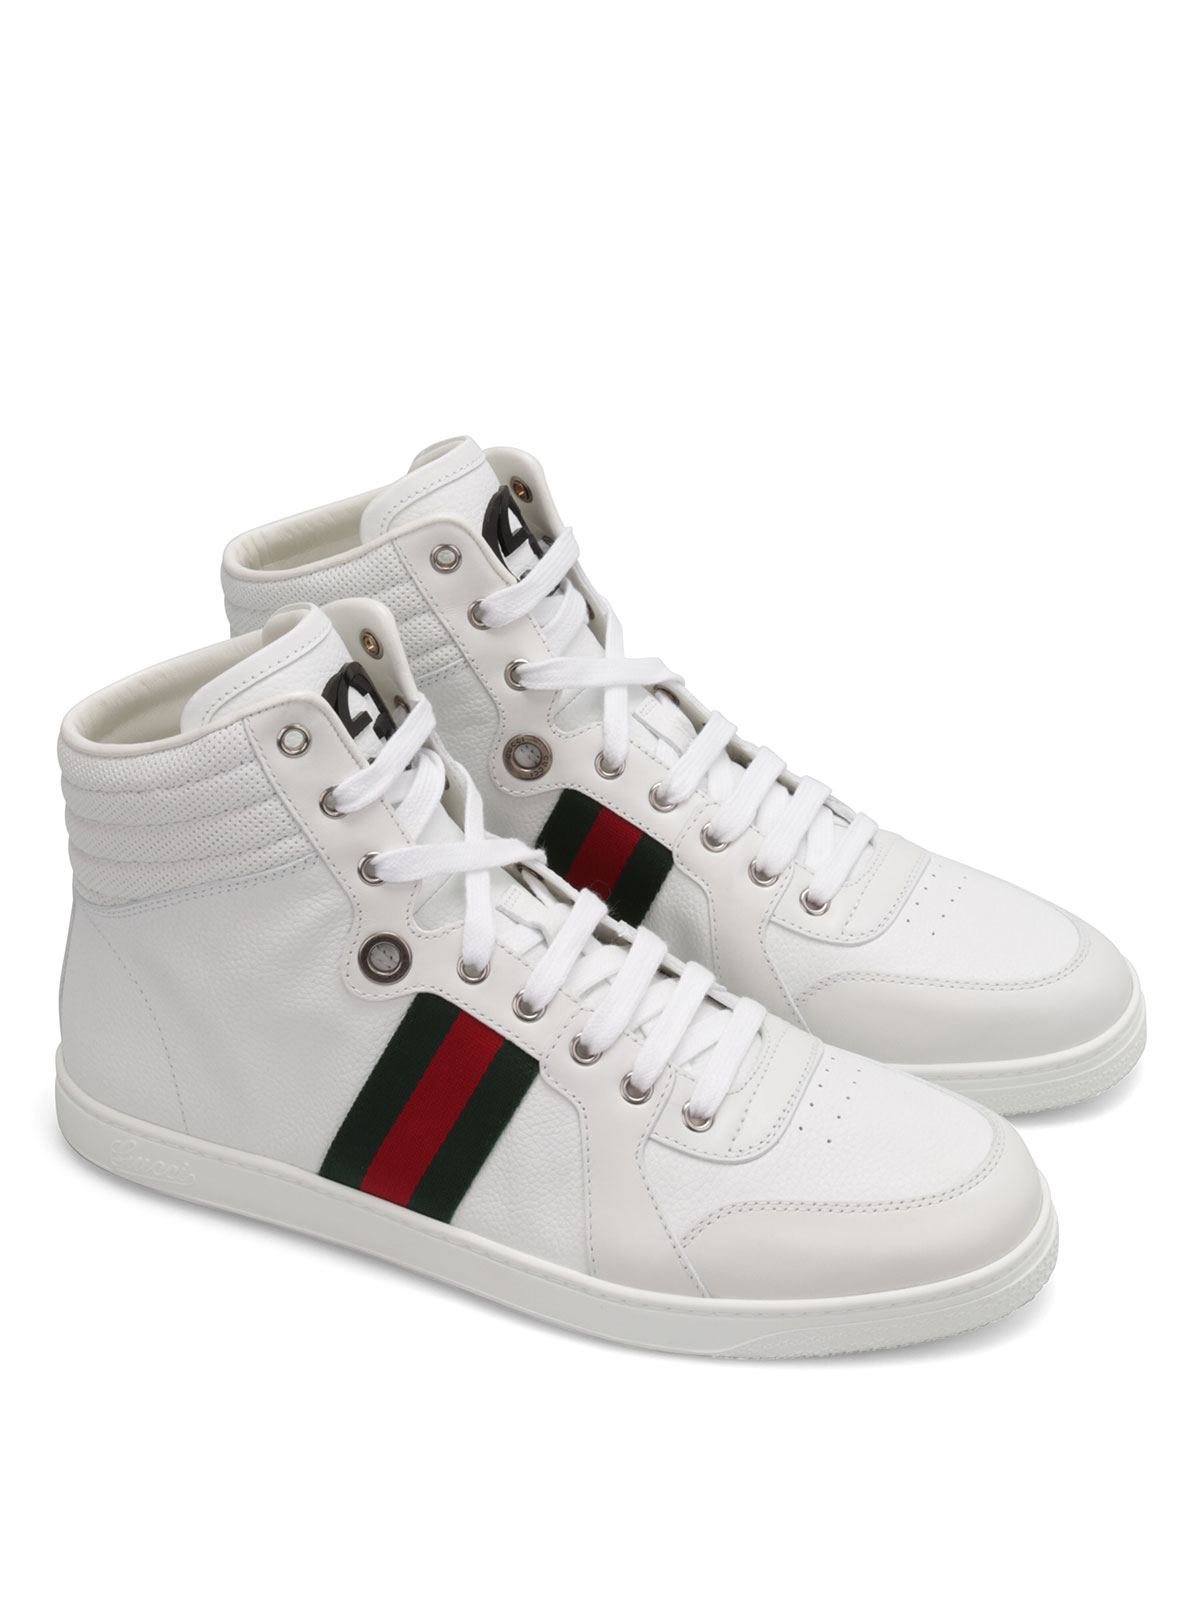 Gucci - Leather high-top sneakers